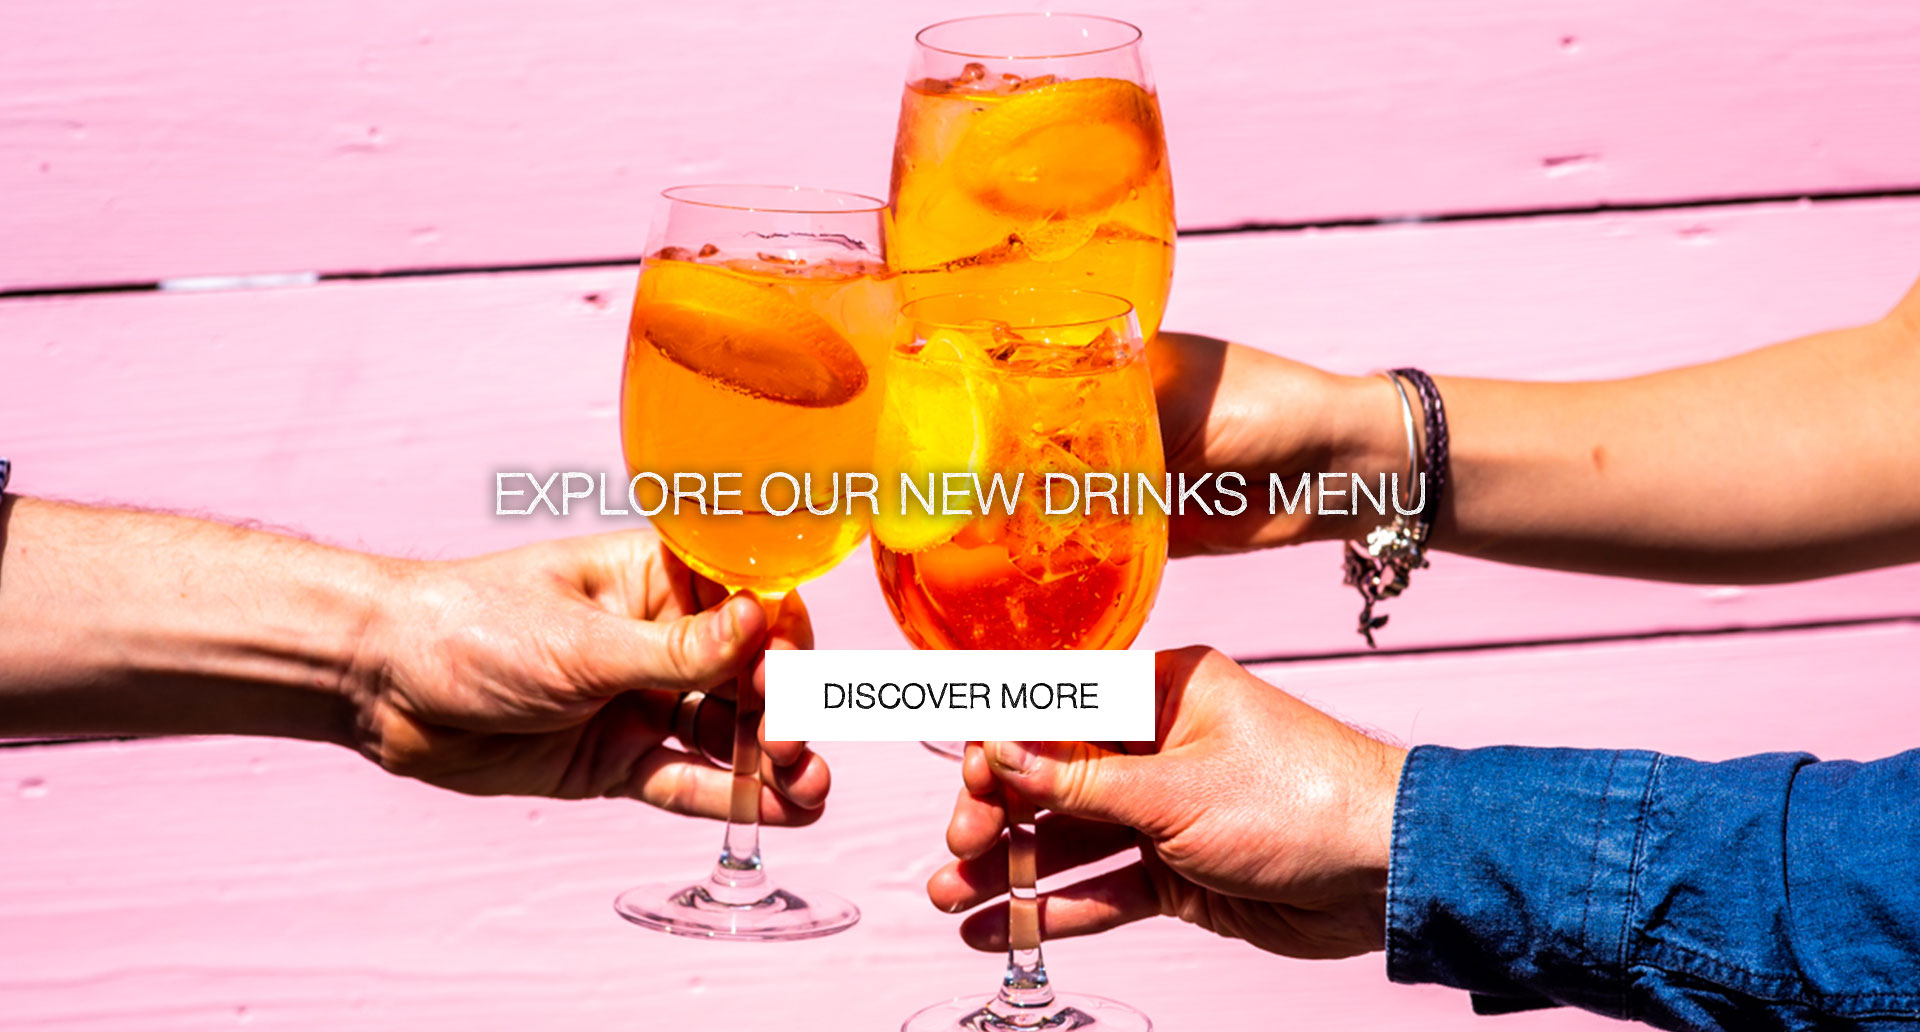 Our New Drinks Menu at Harry Cook Free House